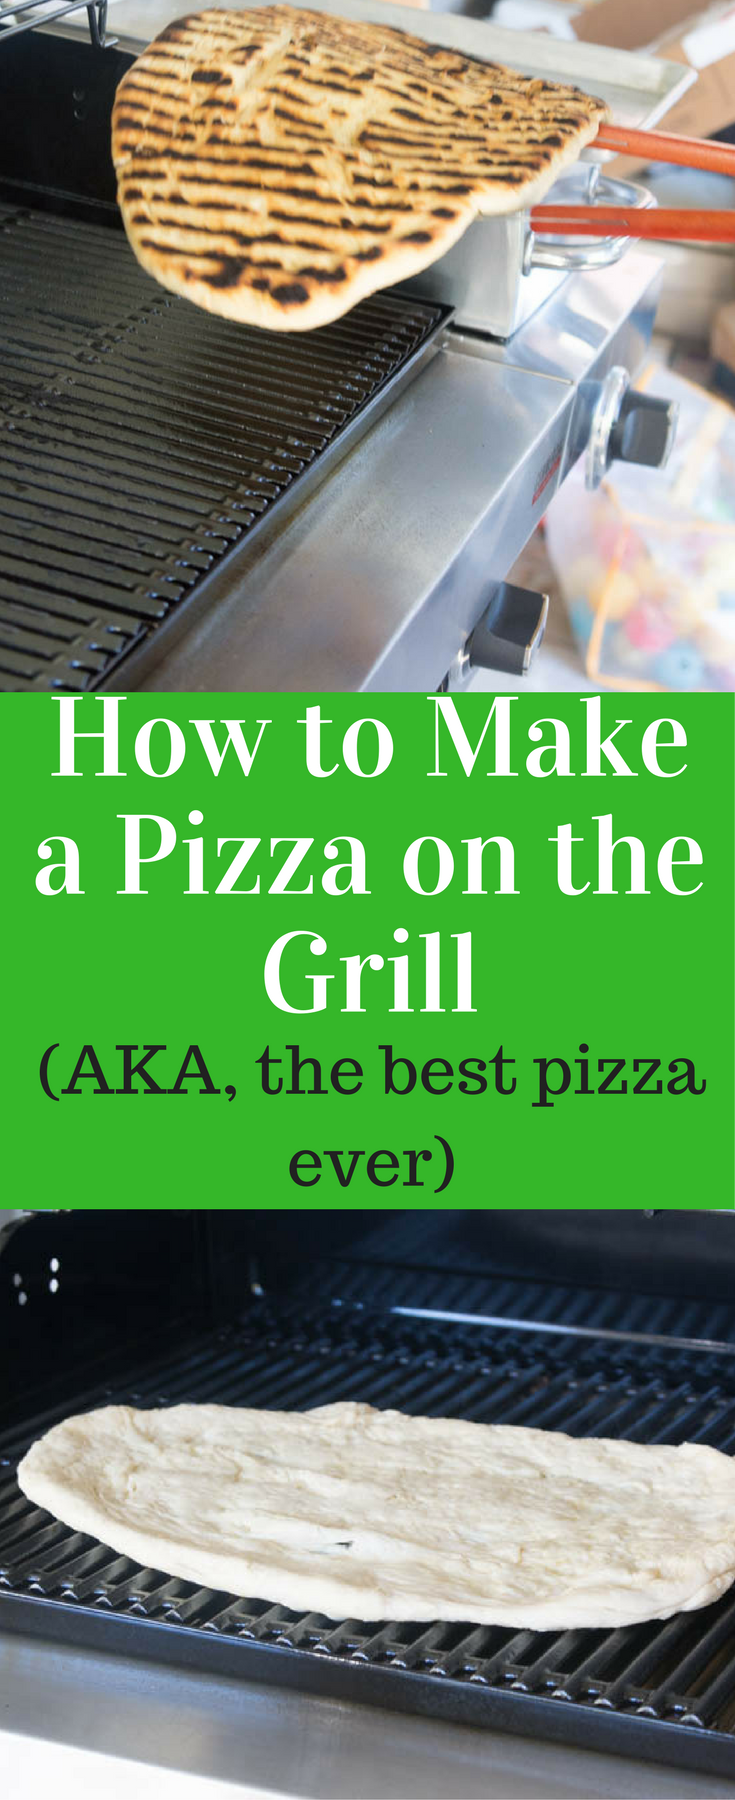 How to Make Pizza on the Grill / Grilled Pizza / Grilling pizza / Pizza on the Grill / Outdoor Pizza / HOmemade Pizza